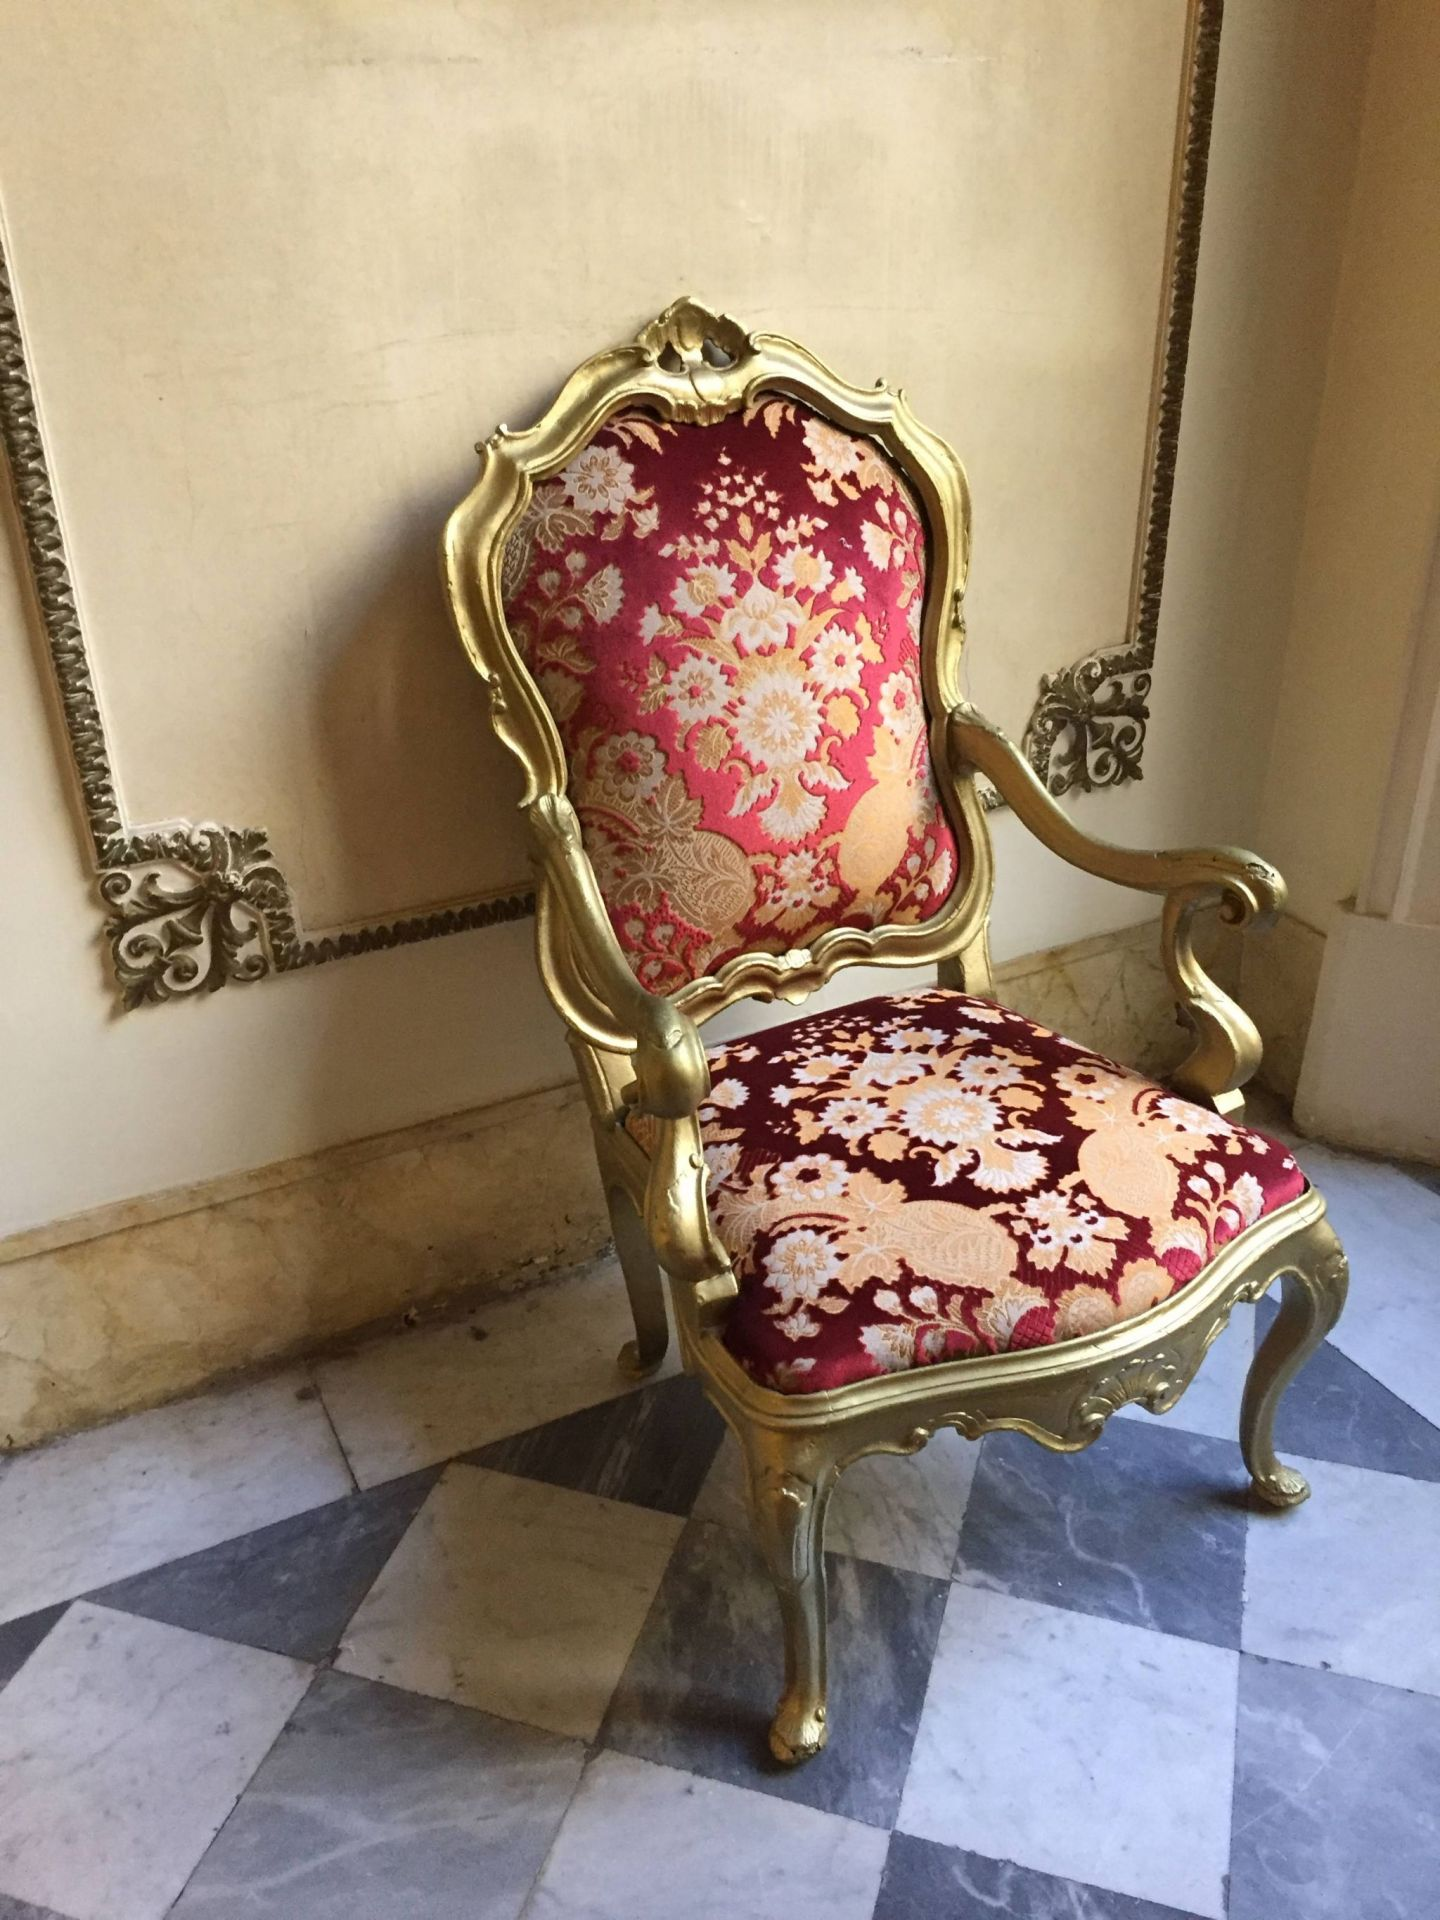 Chair in Hotel Quirinale, Rome